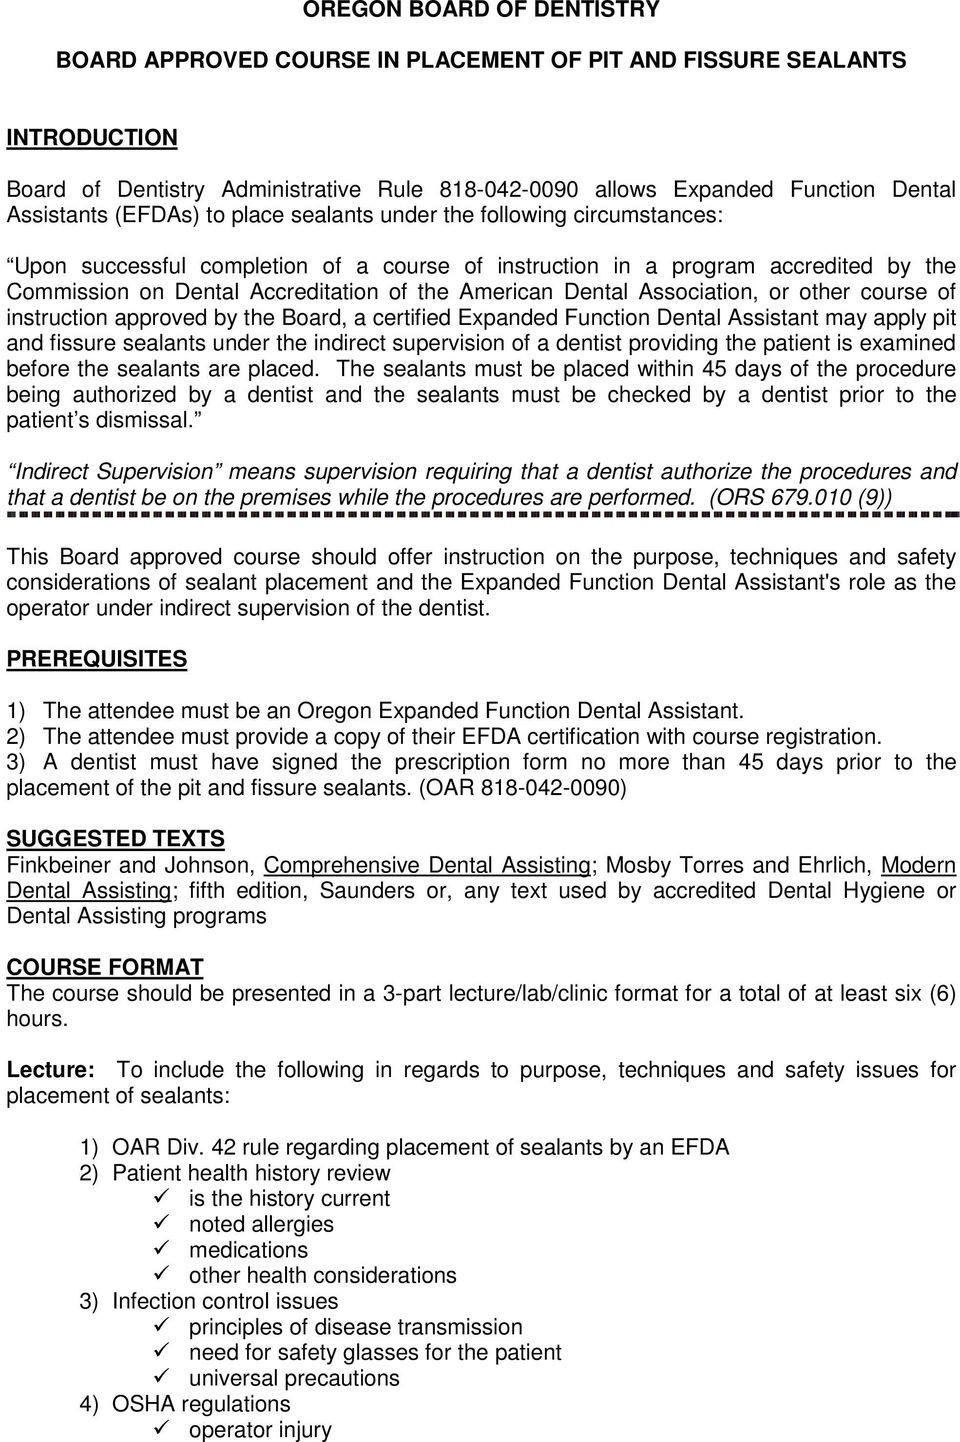 Oregon Board Of Dentistry Board Approved Course In Placement Of Pit